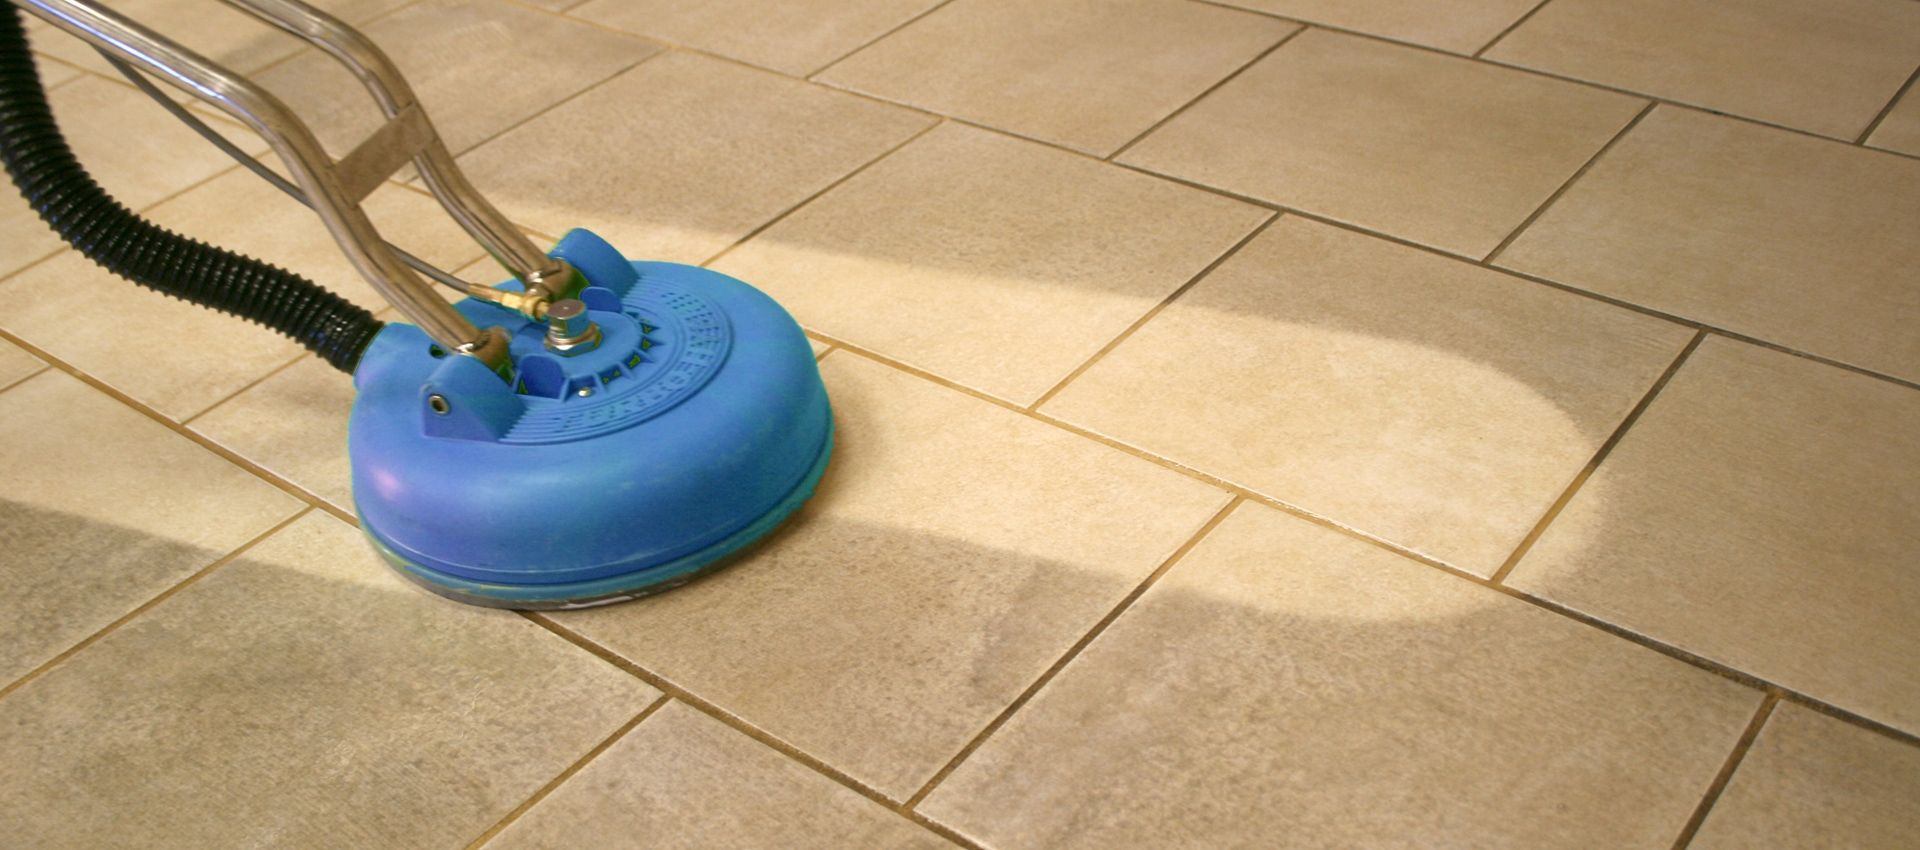 Best Ceramic Tile Floor Scrubber httpnextsoft21com Pinterest